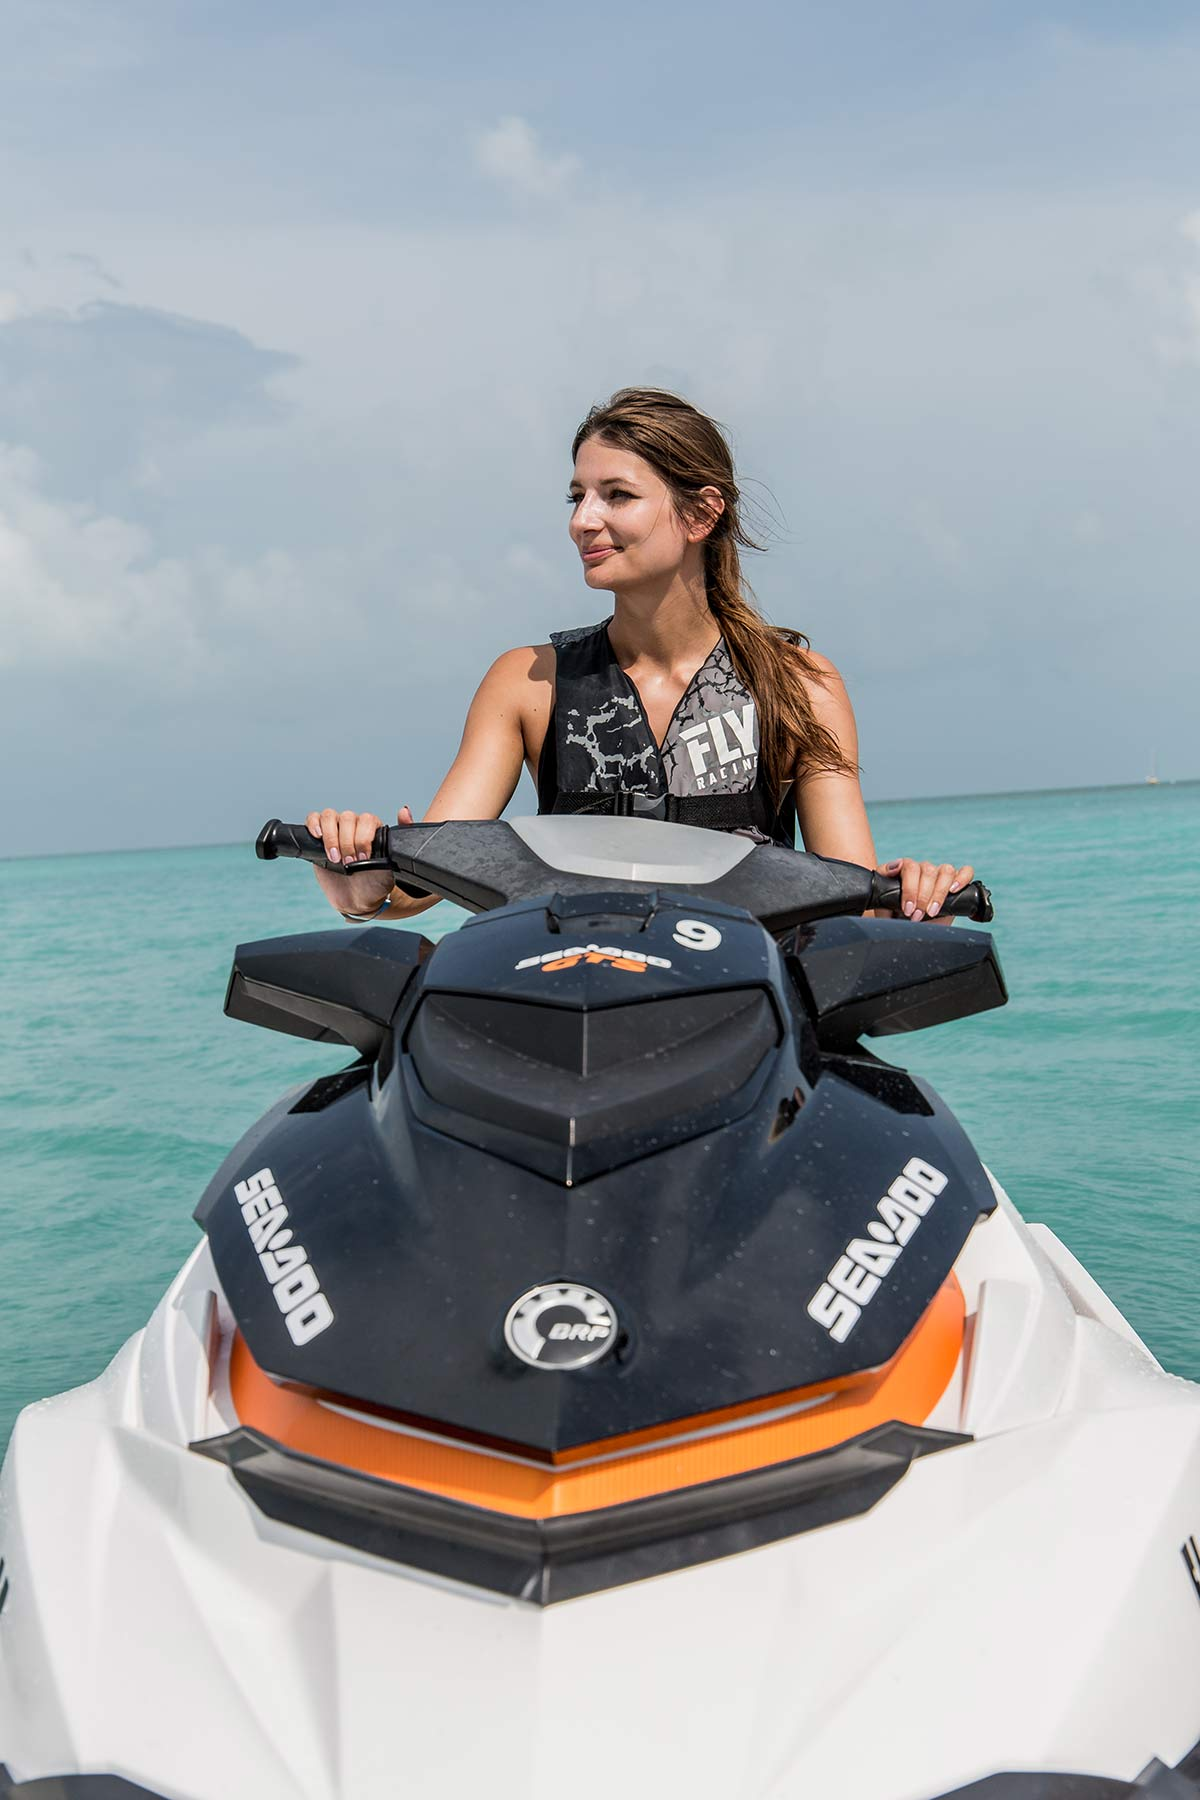 Fury Water Adventures Jetski fahren